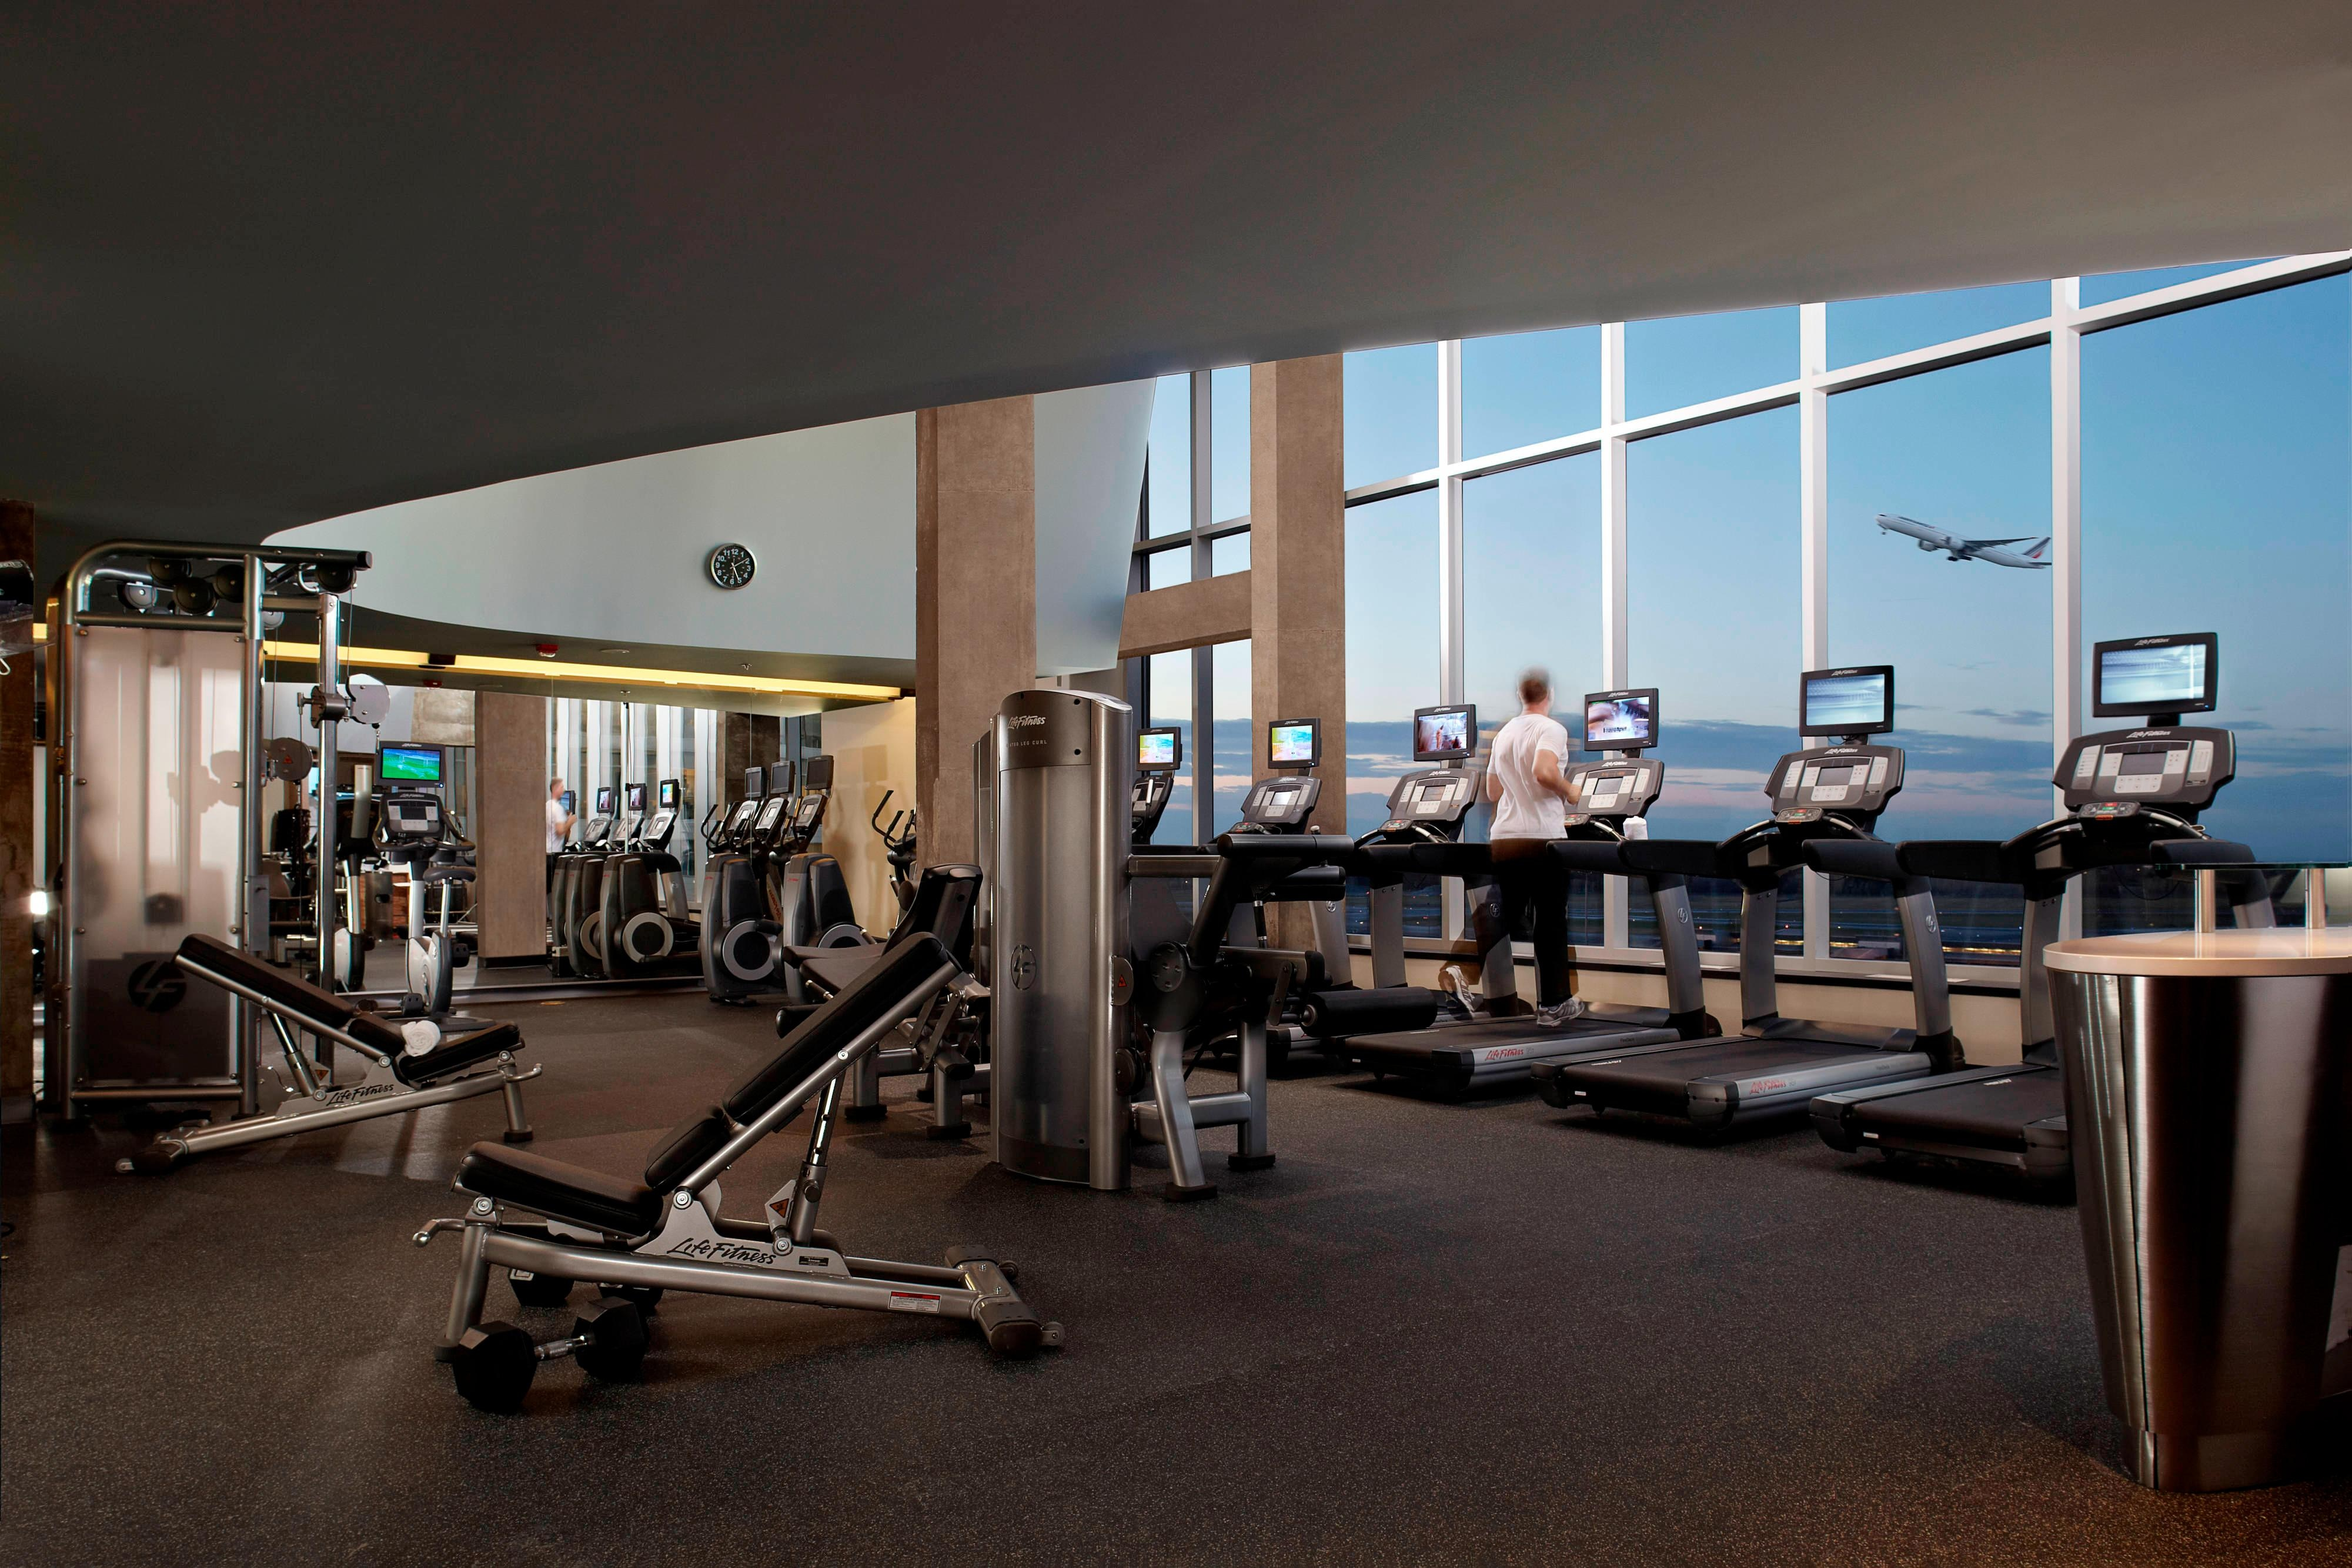 Montreal airport hotel gym